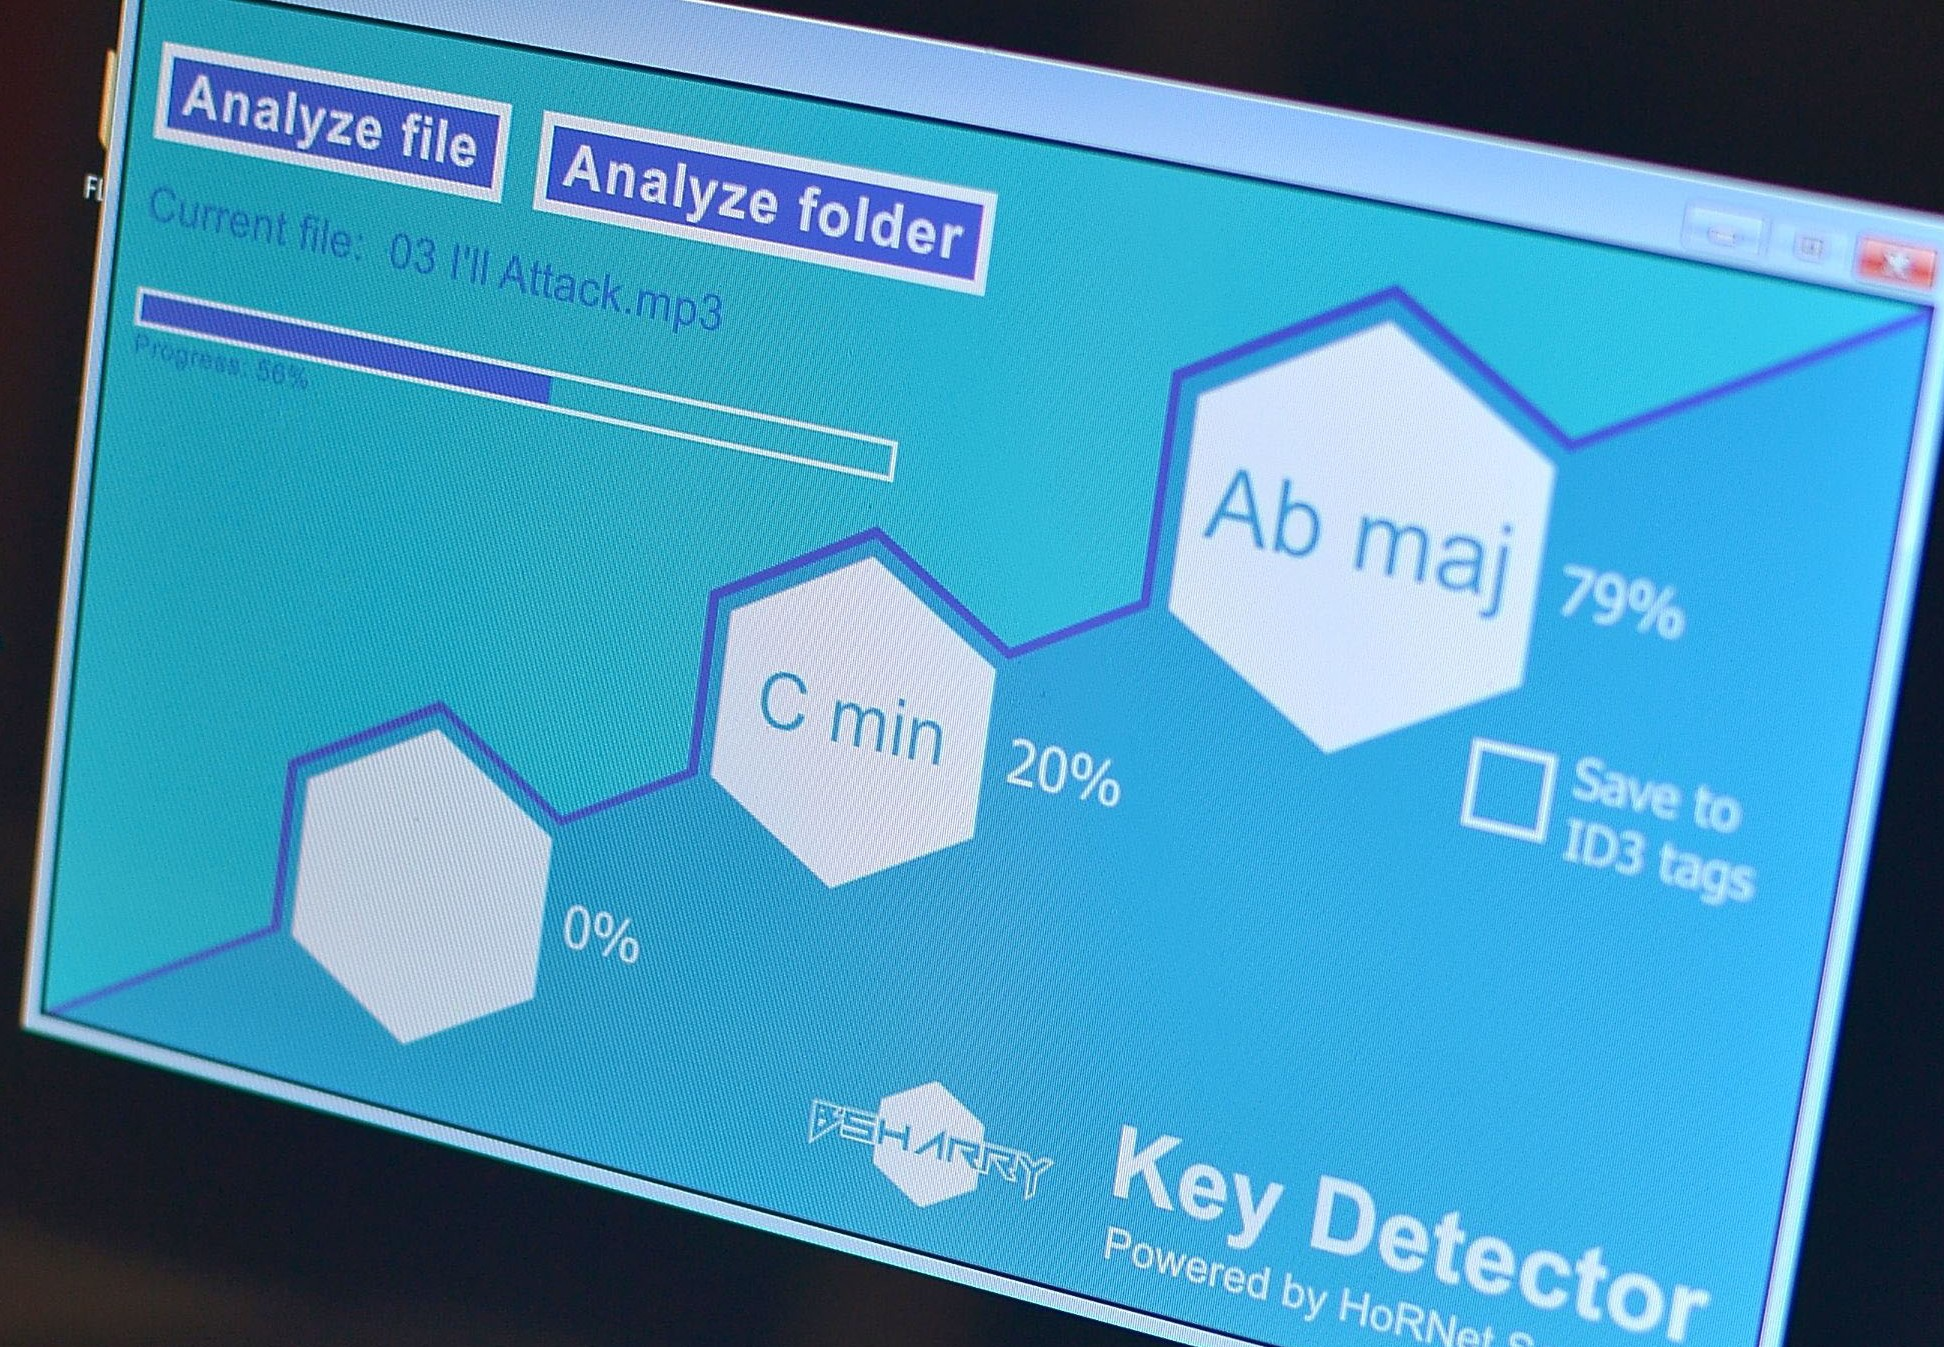 BSharry Key Detector, key detection for your mp3s